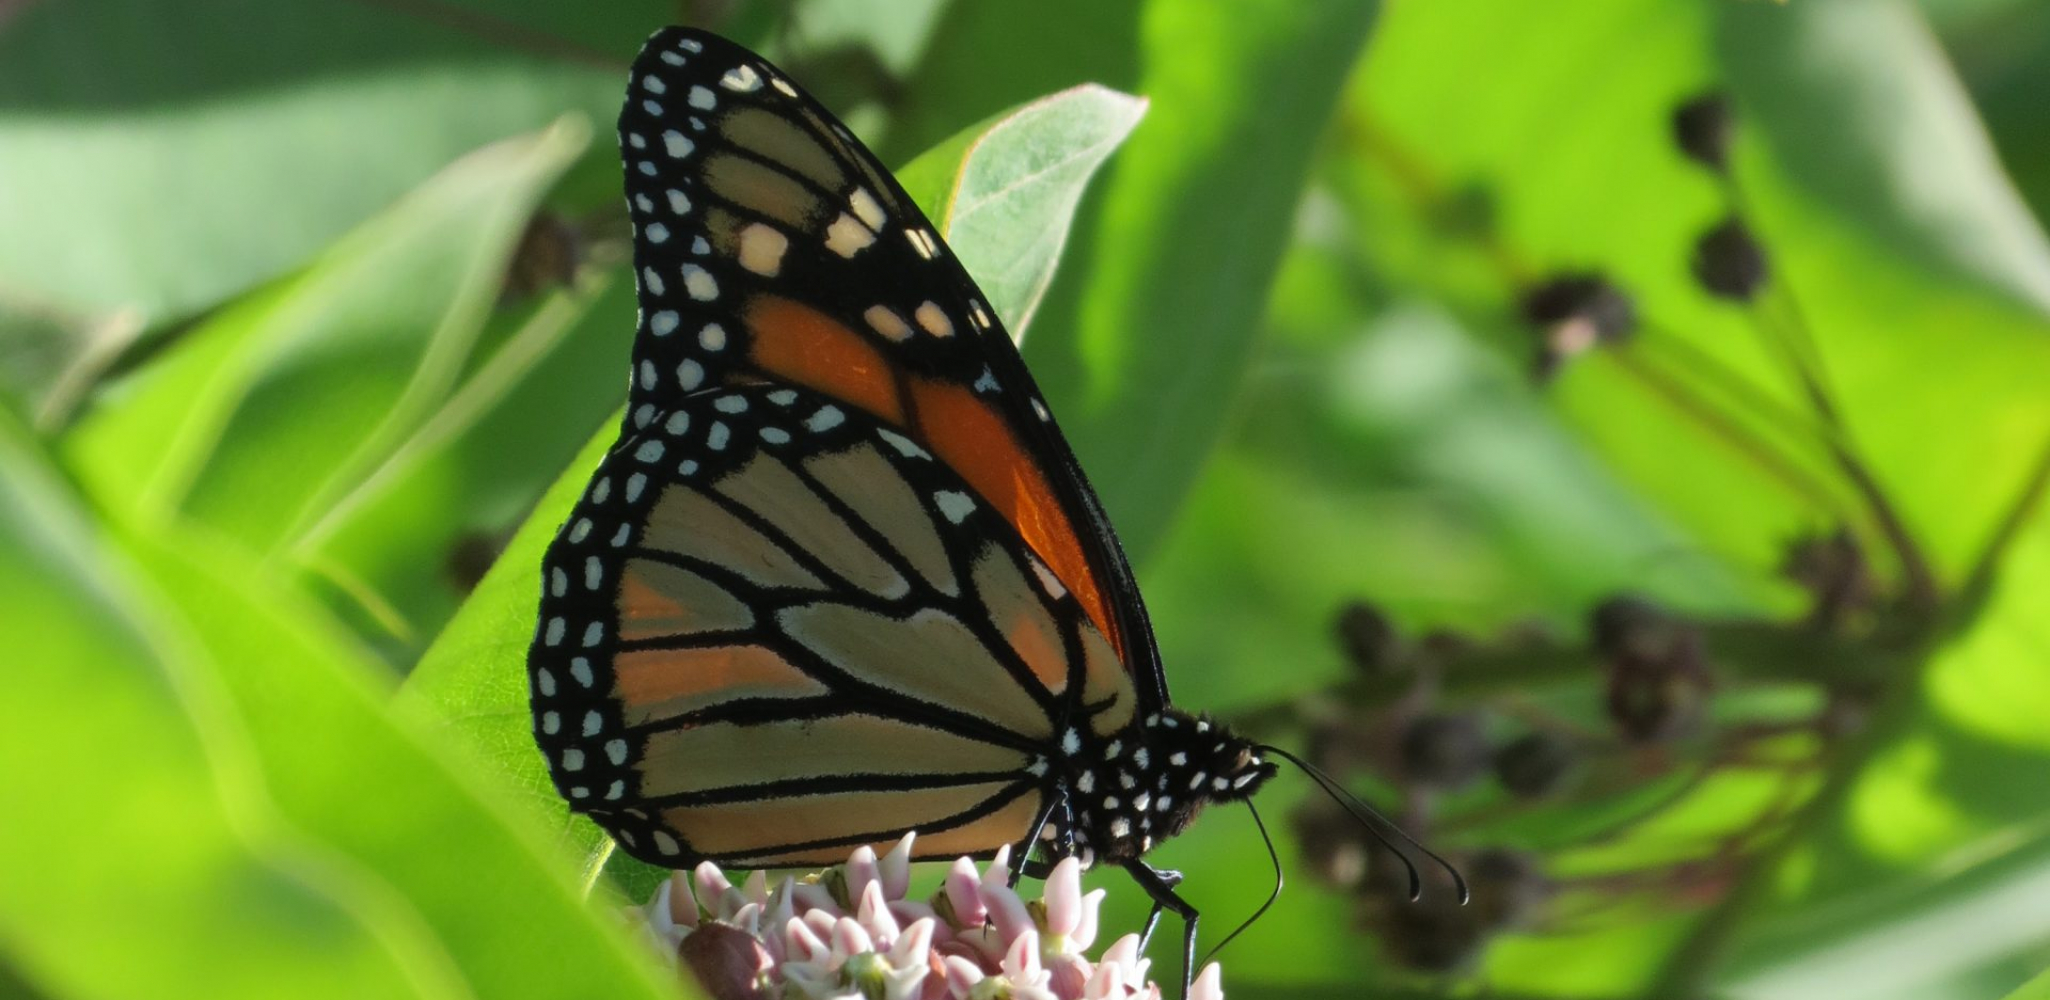 'The Flight of the Monarch Butterfly- The Pollinator Project' to Air on Discovery, Science Channel and Animal Planet